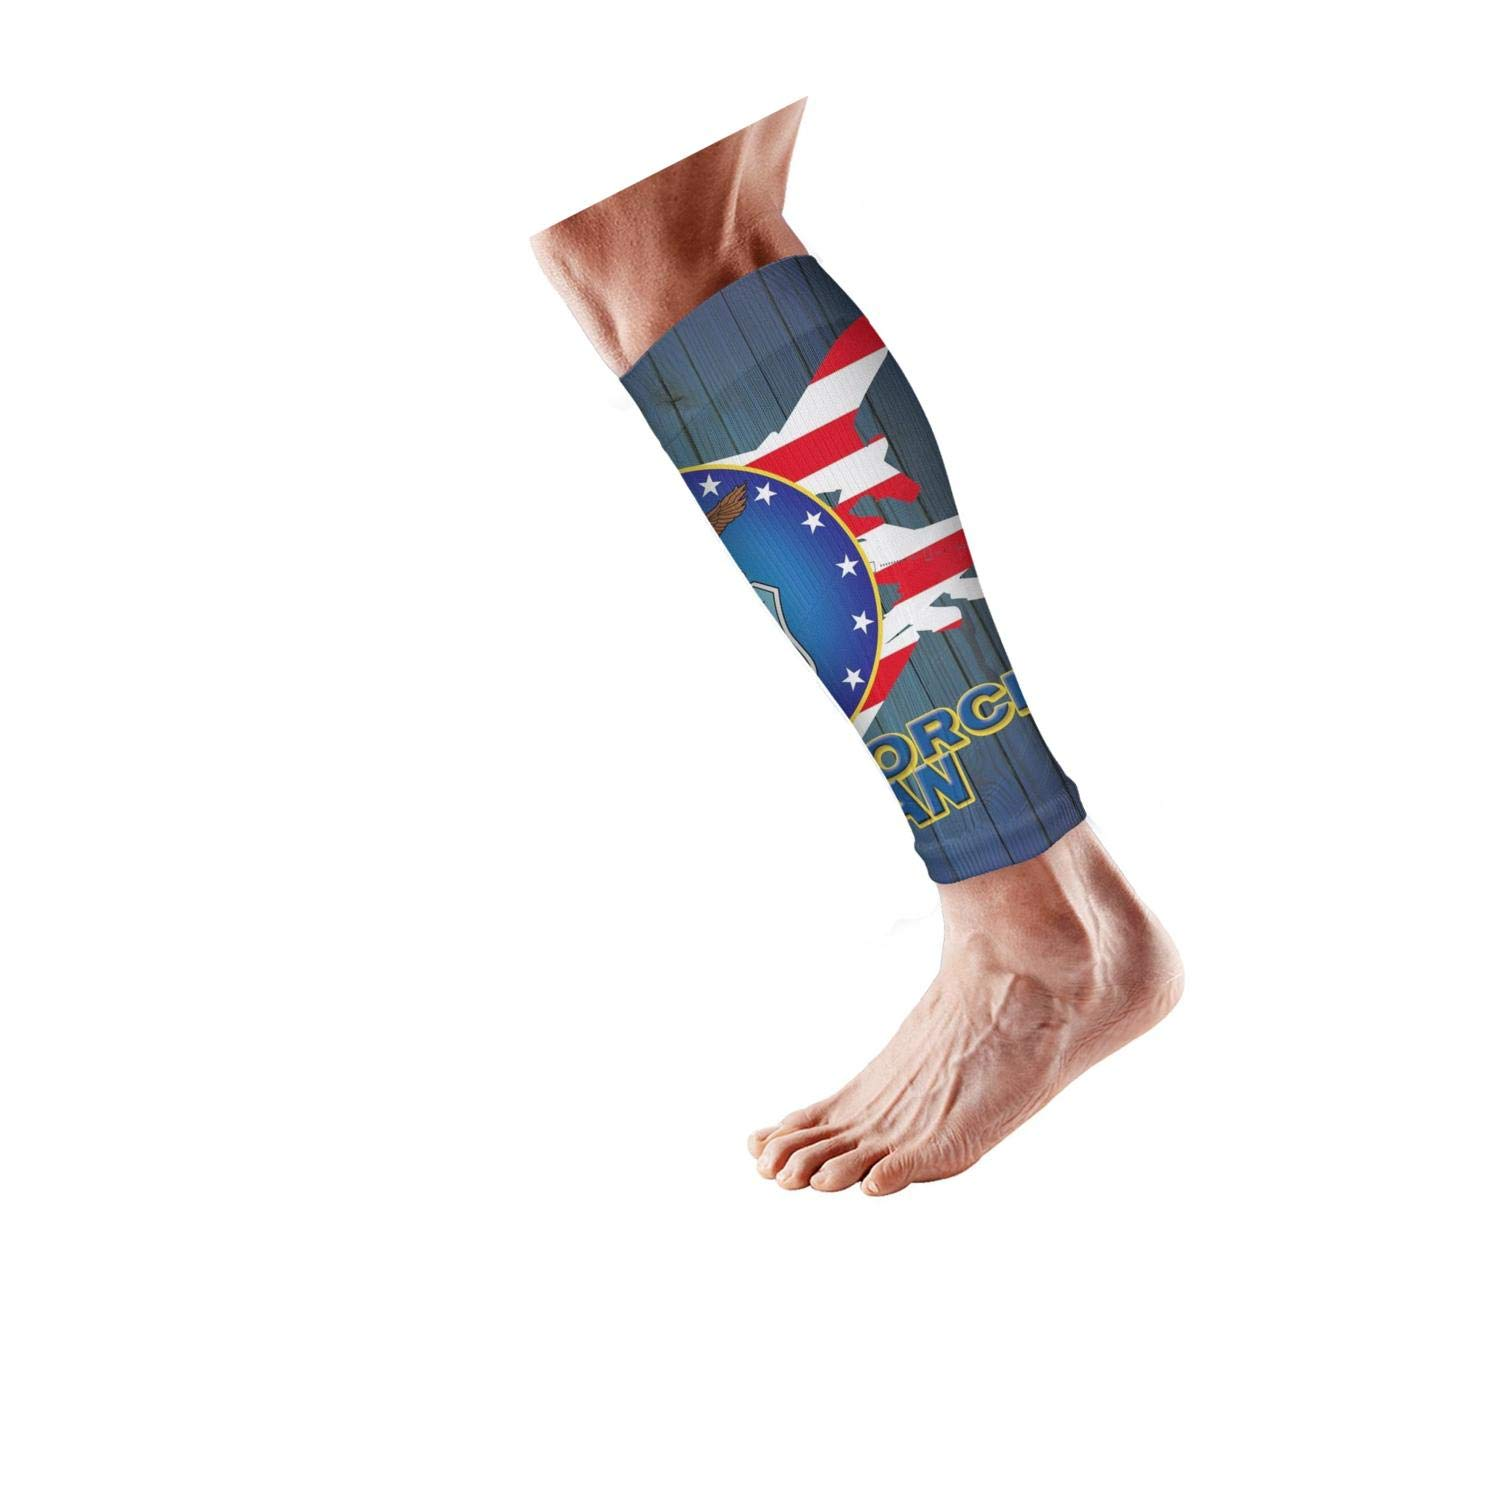 Smilelolly us air force veteran Calf Compression Sleeves Helps Pain Relief Leg Sleeves for Men Women